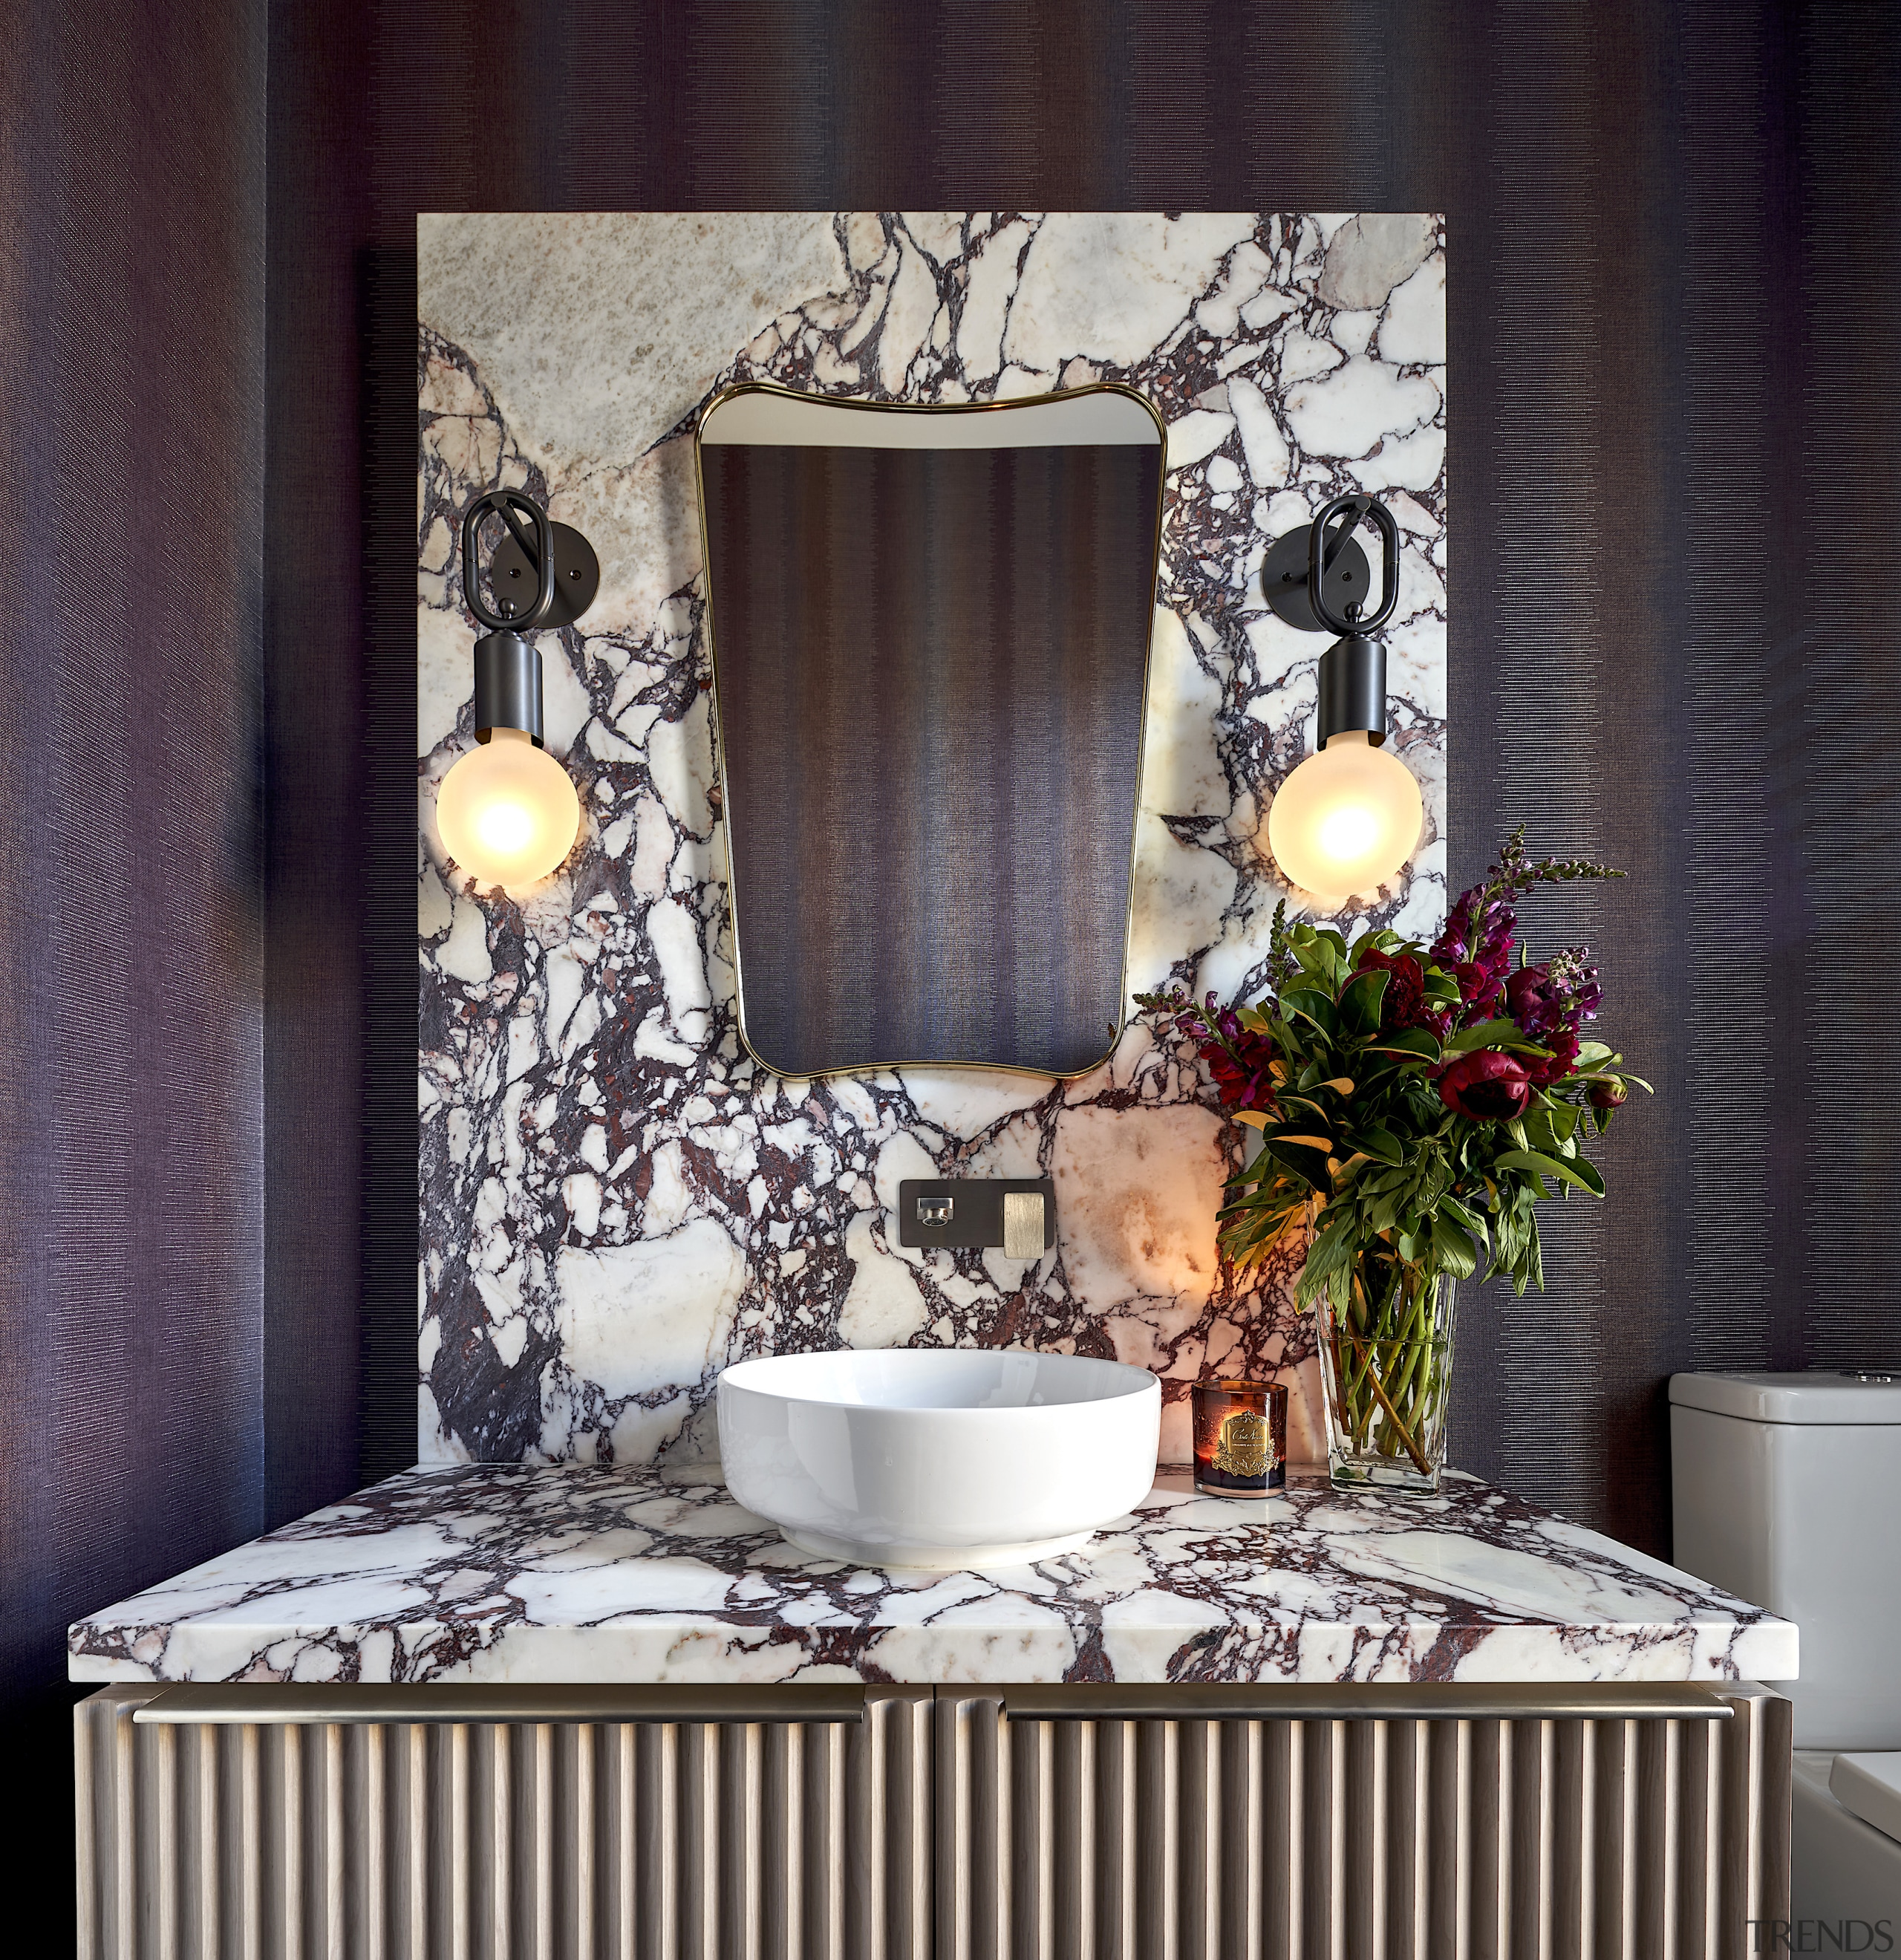 Vibrantly veined stone slabs and striking vinyl-faced wallpaper